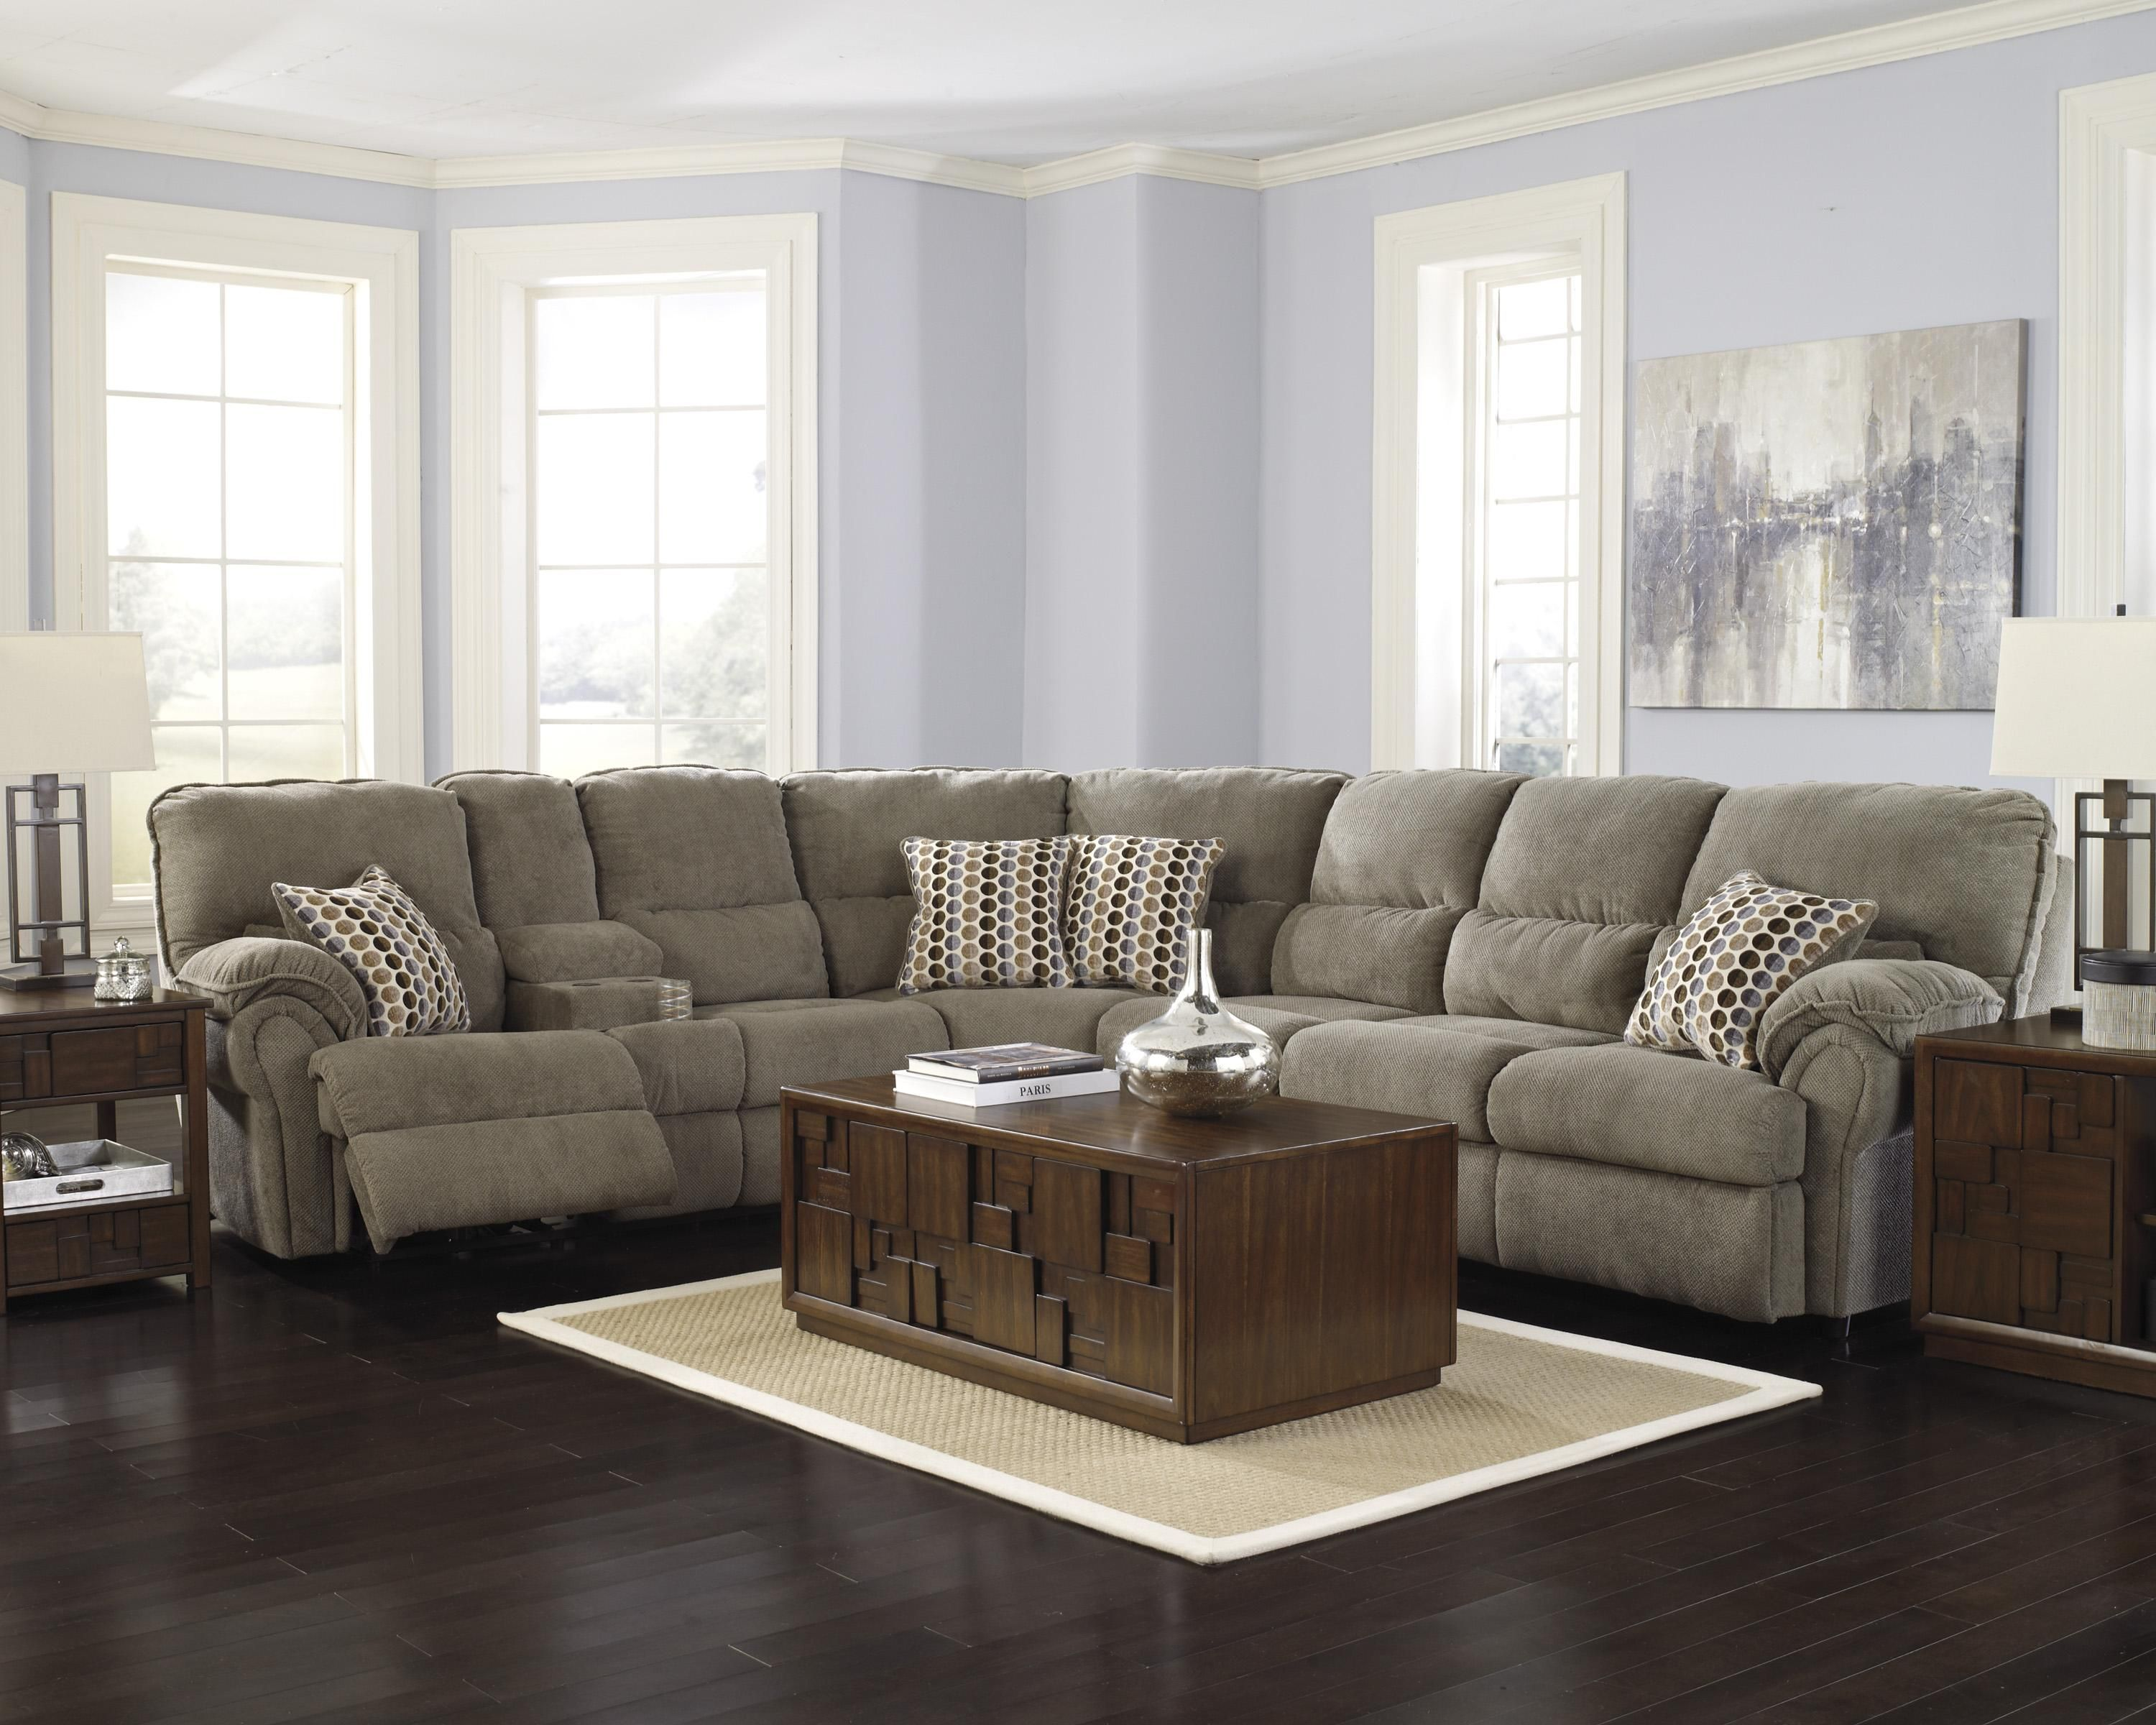 My Style Traditional Sectional Sofa by Rowe